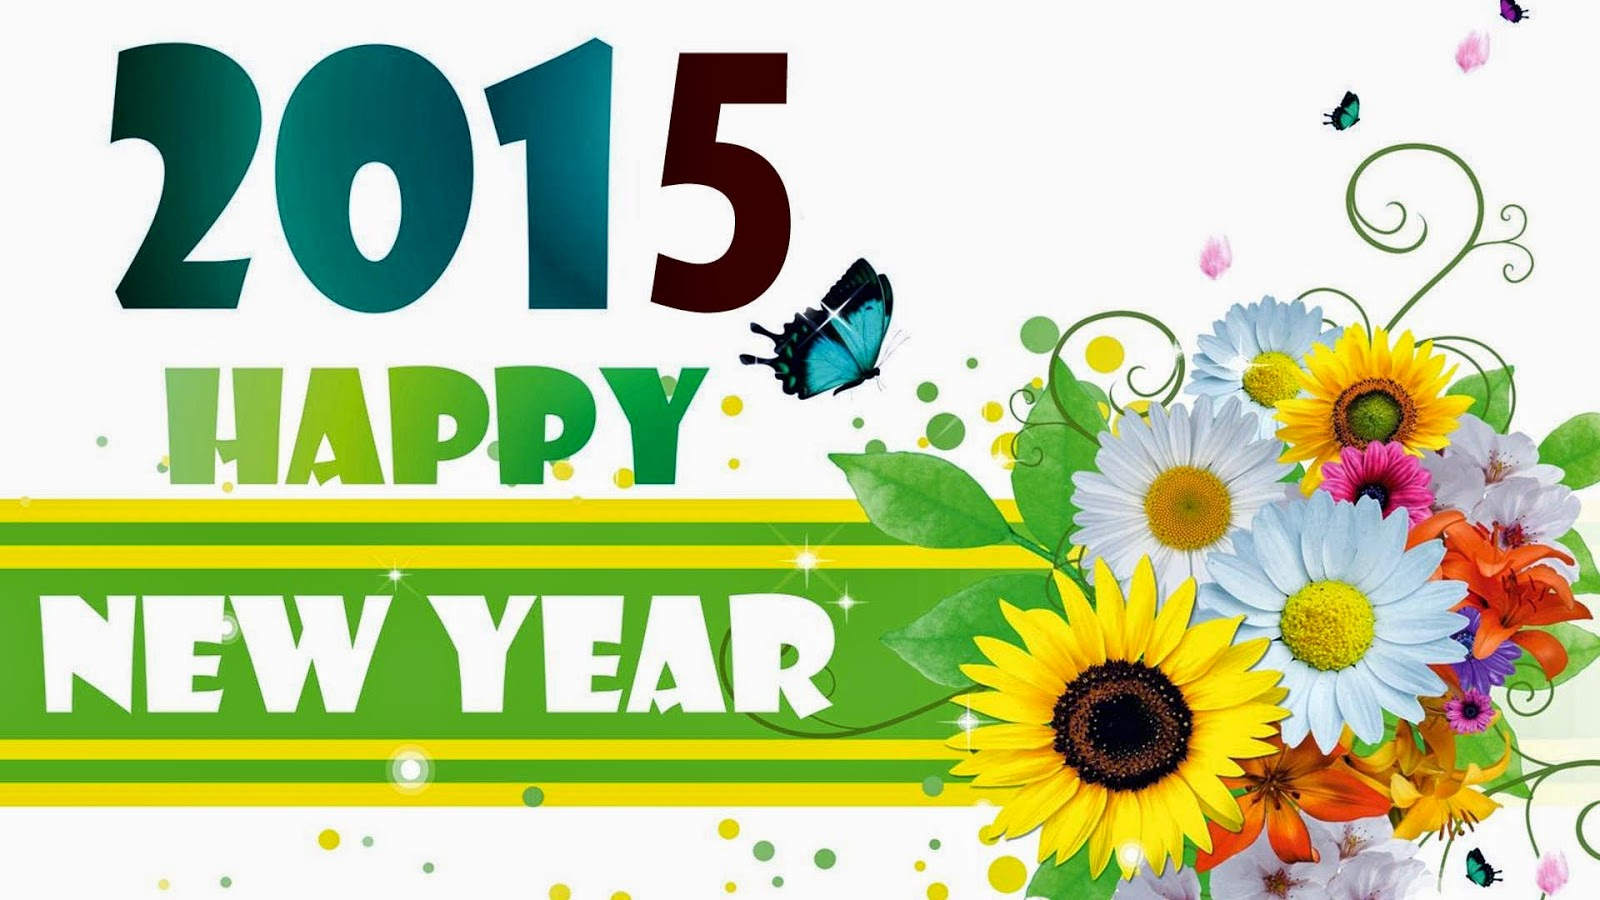 Happy new year 2015 wallpapers download set 4 happy new year 2015 hd wallpaper 32 m4hsunfo